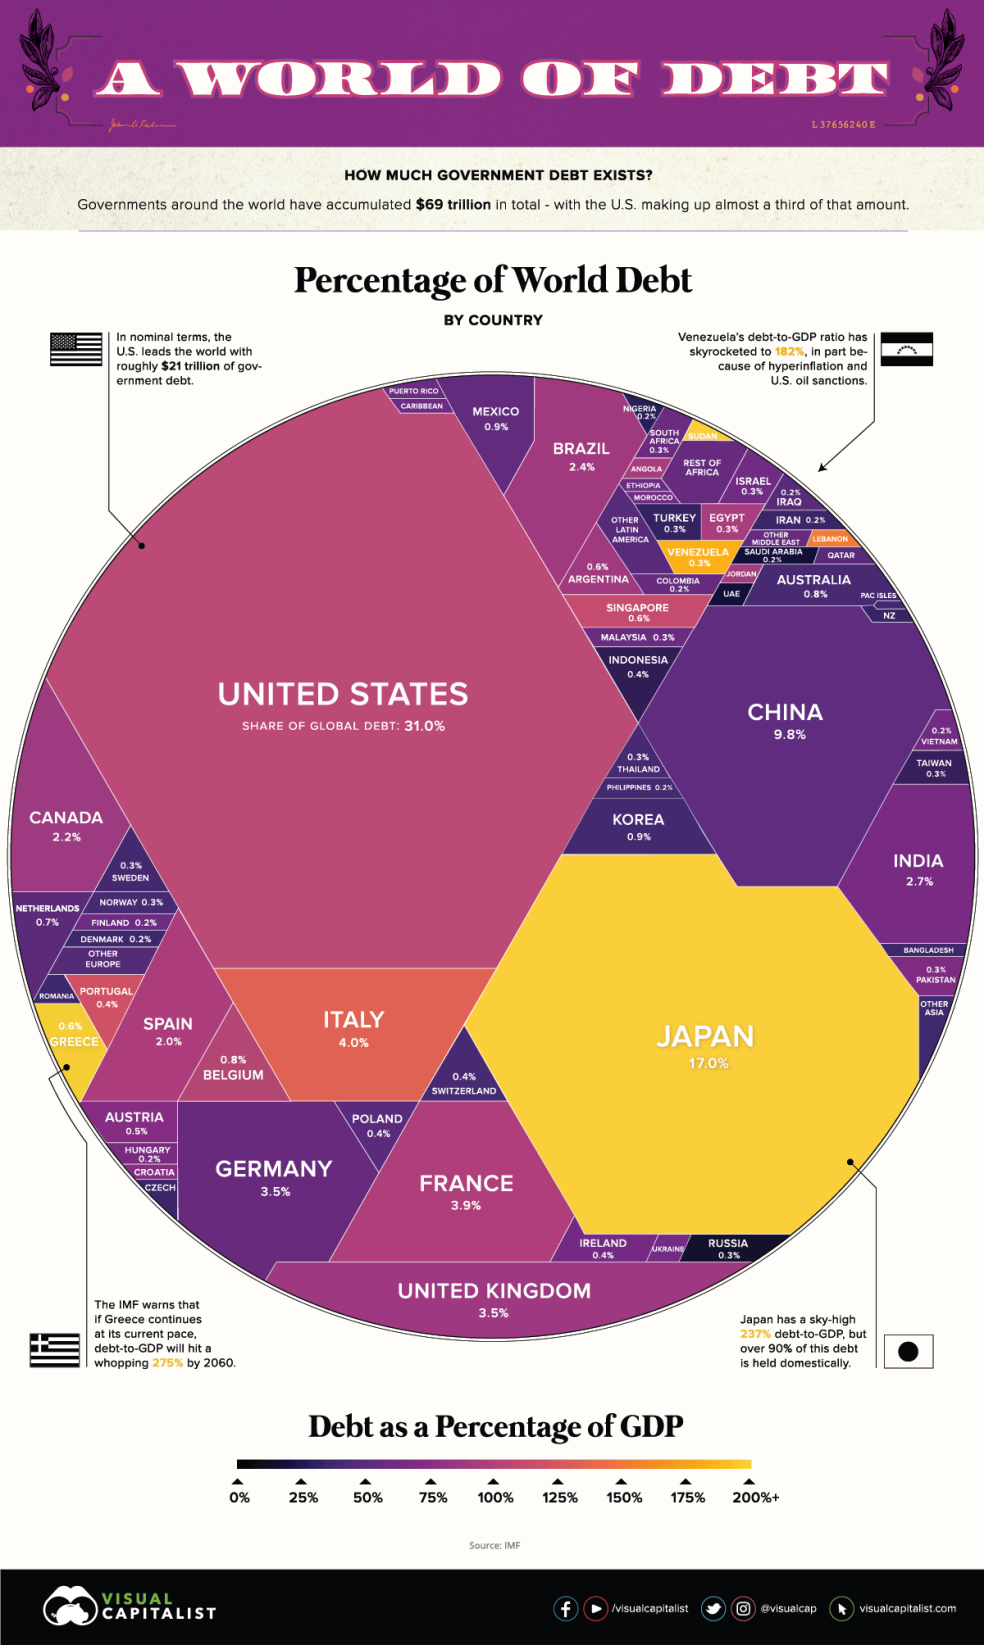 $69 Trillion of World Debt in One Infographic